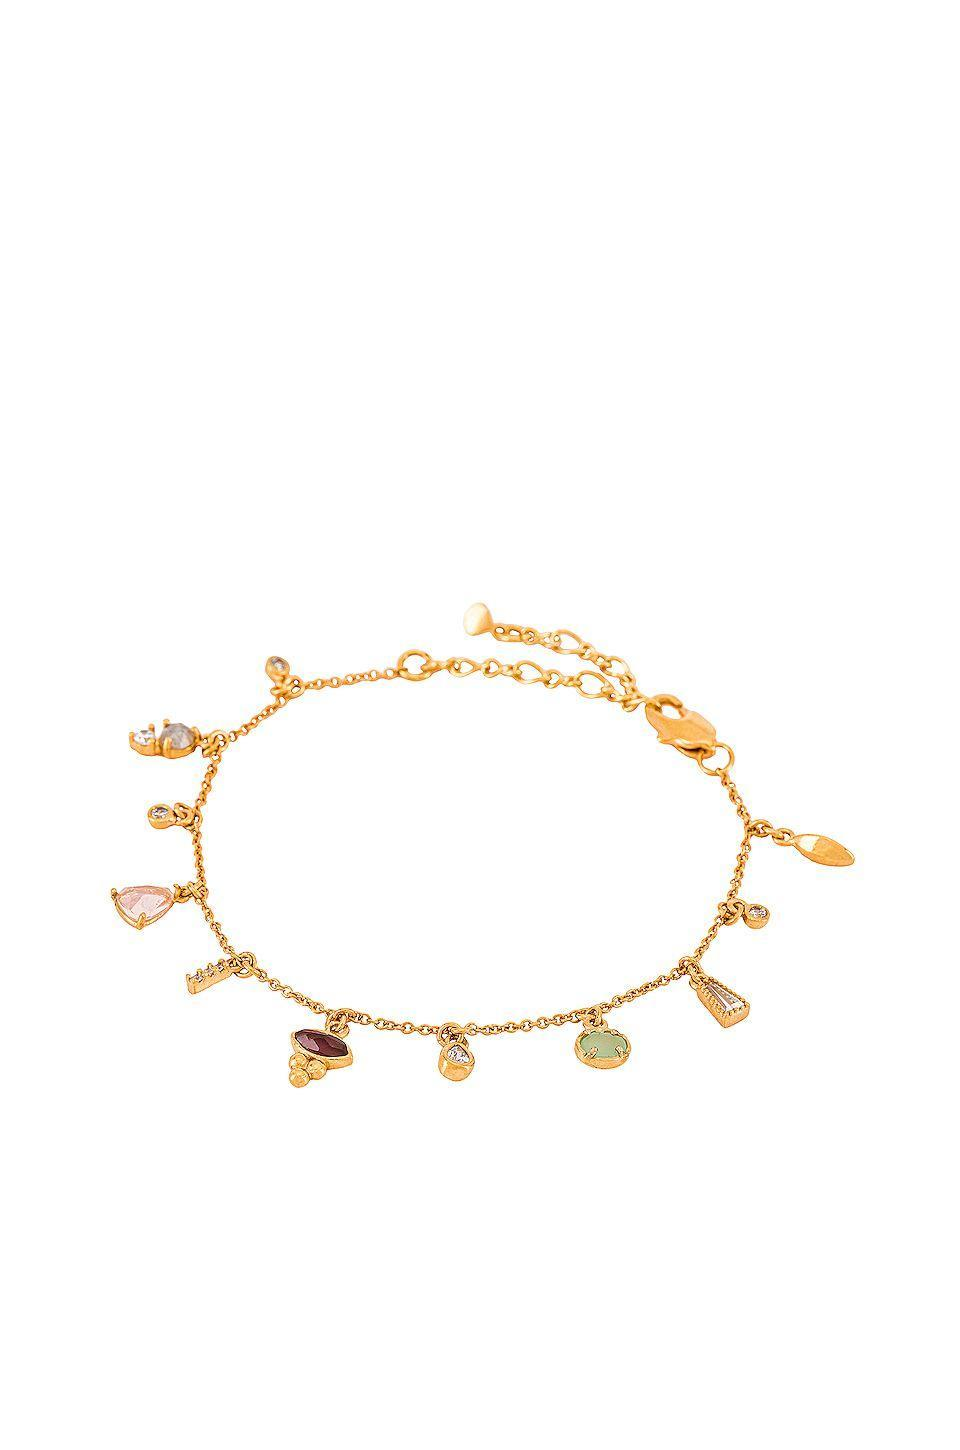 """<p><strong>TAI Jewelry</strong></p><p>revolve.com</p><p><strong>$95.00</strong></p><p><a href=""""https://go.redirectingat.com?id=74968X1596630&url=https%3A%2F%2Fwww.revolve.com%2Fdp%2FTLRR-WL29%2F&sref=https%3A%2F%2Fwww.cosmopolitan.com%2Fstyle-beauty%2Ffashion%2Fg33758380%2Fjewelry-trends-winter-2020-2021%2F"""" rel=""""nofollow noopener"""" target=""""_blank"""" data-ylk=""""slk:Shop Now"""" class=""""link rapid-noclick-resp"""">Shop Now</a></p><p>This dainty bracelet has the prettiest array of crystals on it. </p>"""